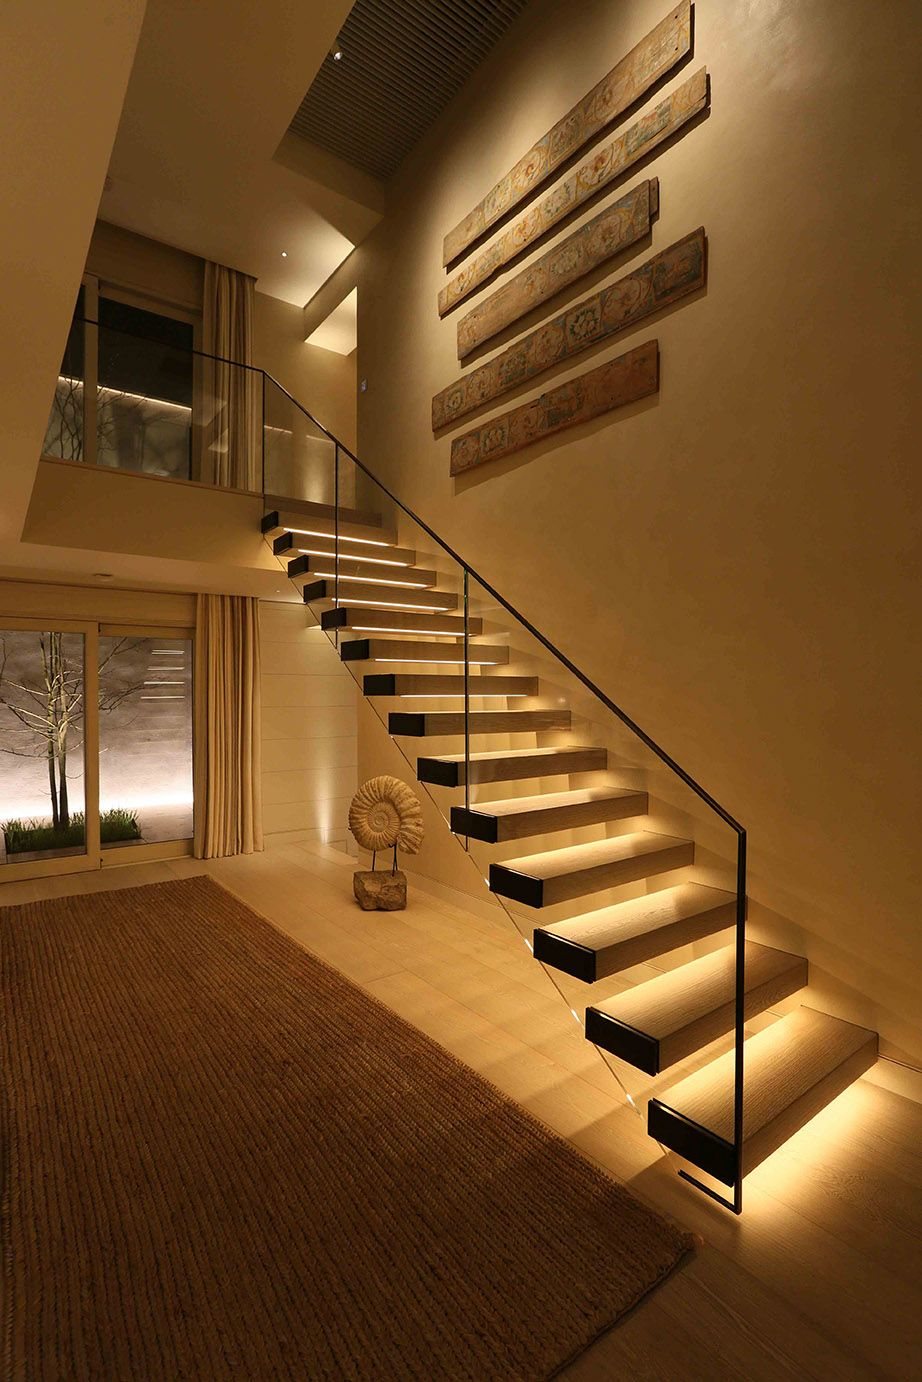 Shadow Gap Staircase Lighting: 10 Most Popular Light For Stairways Ideas